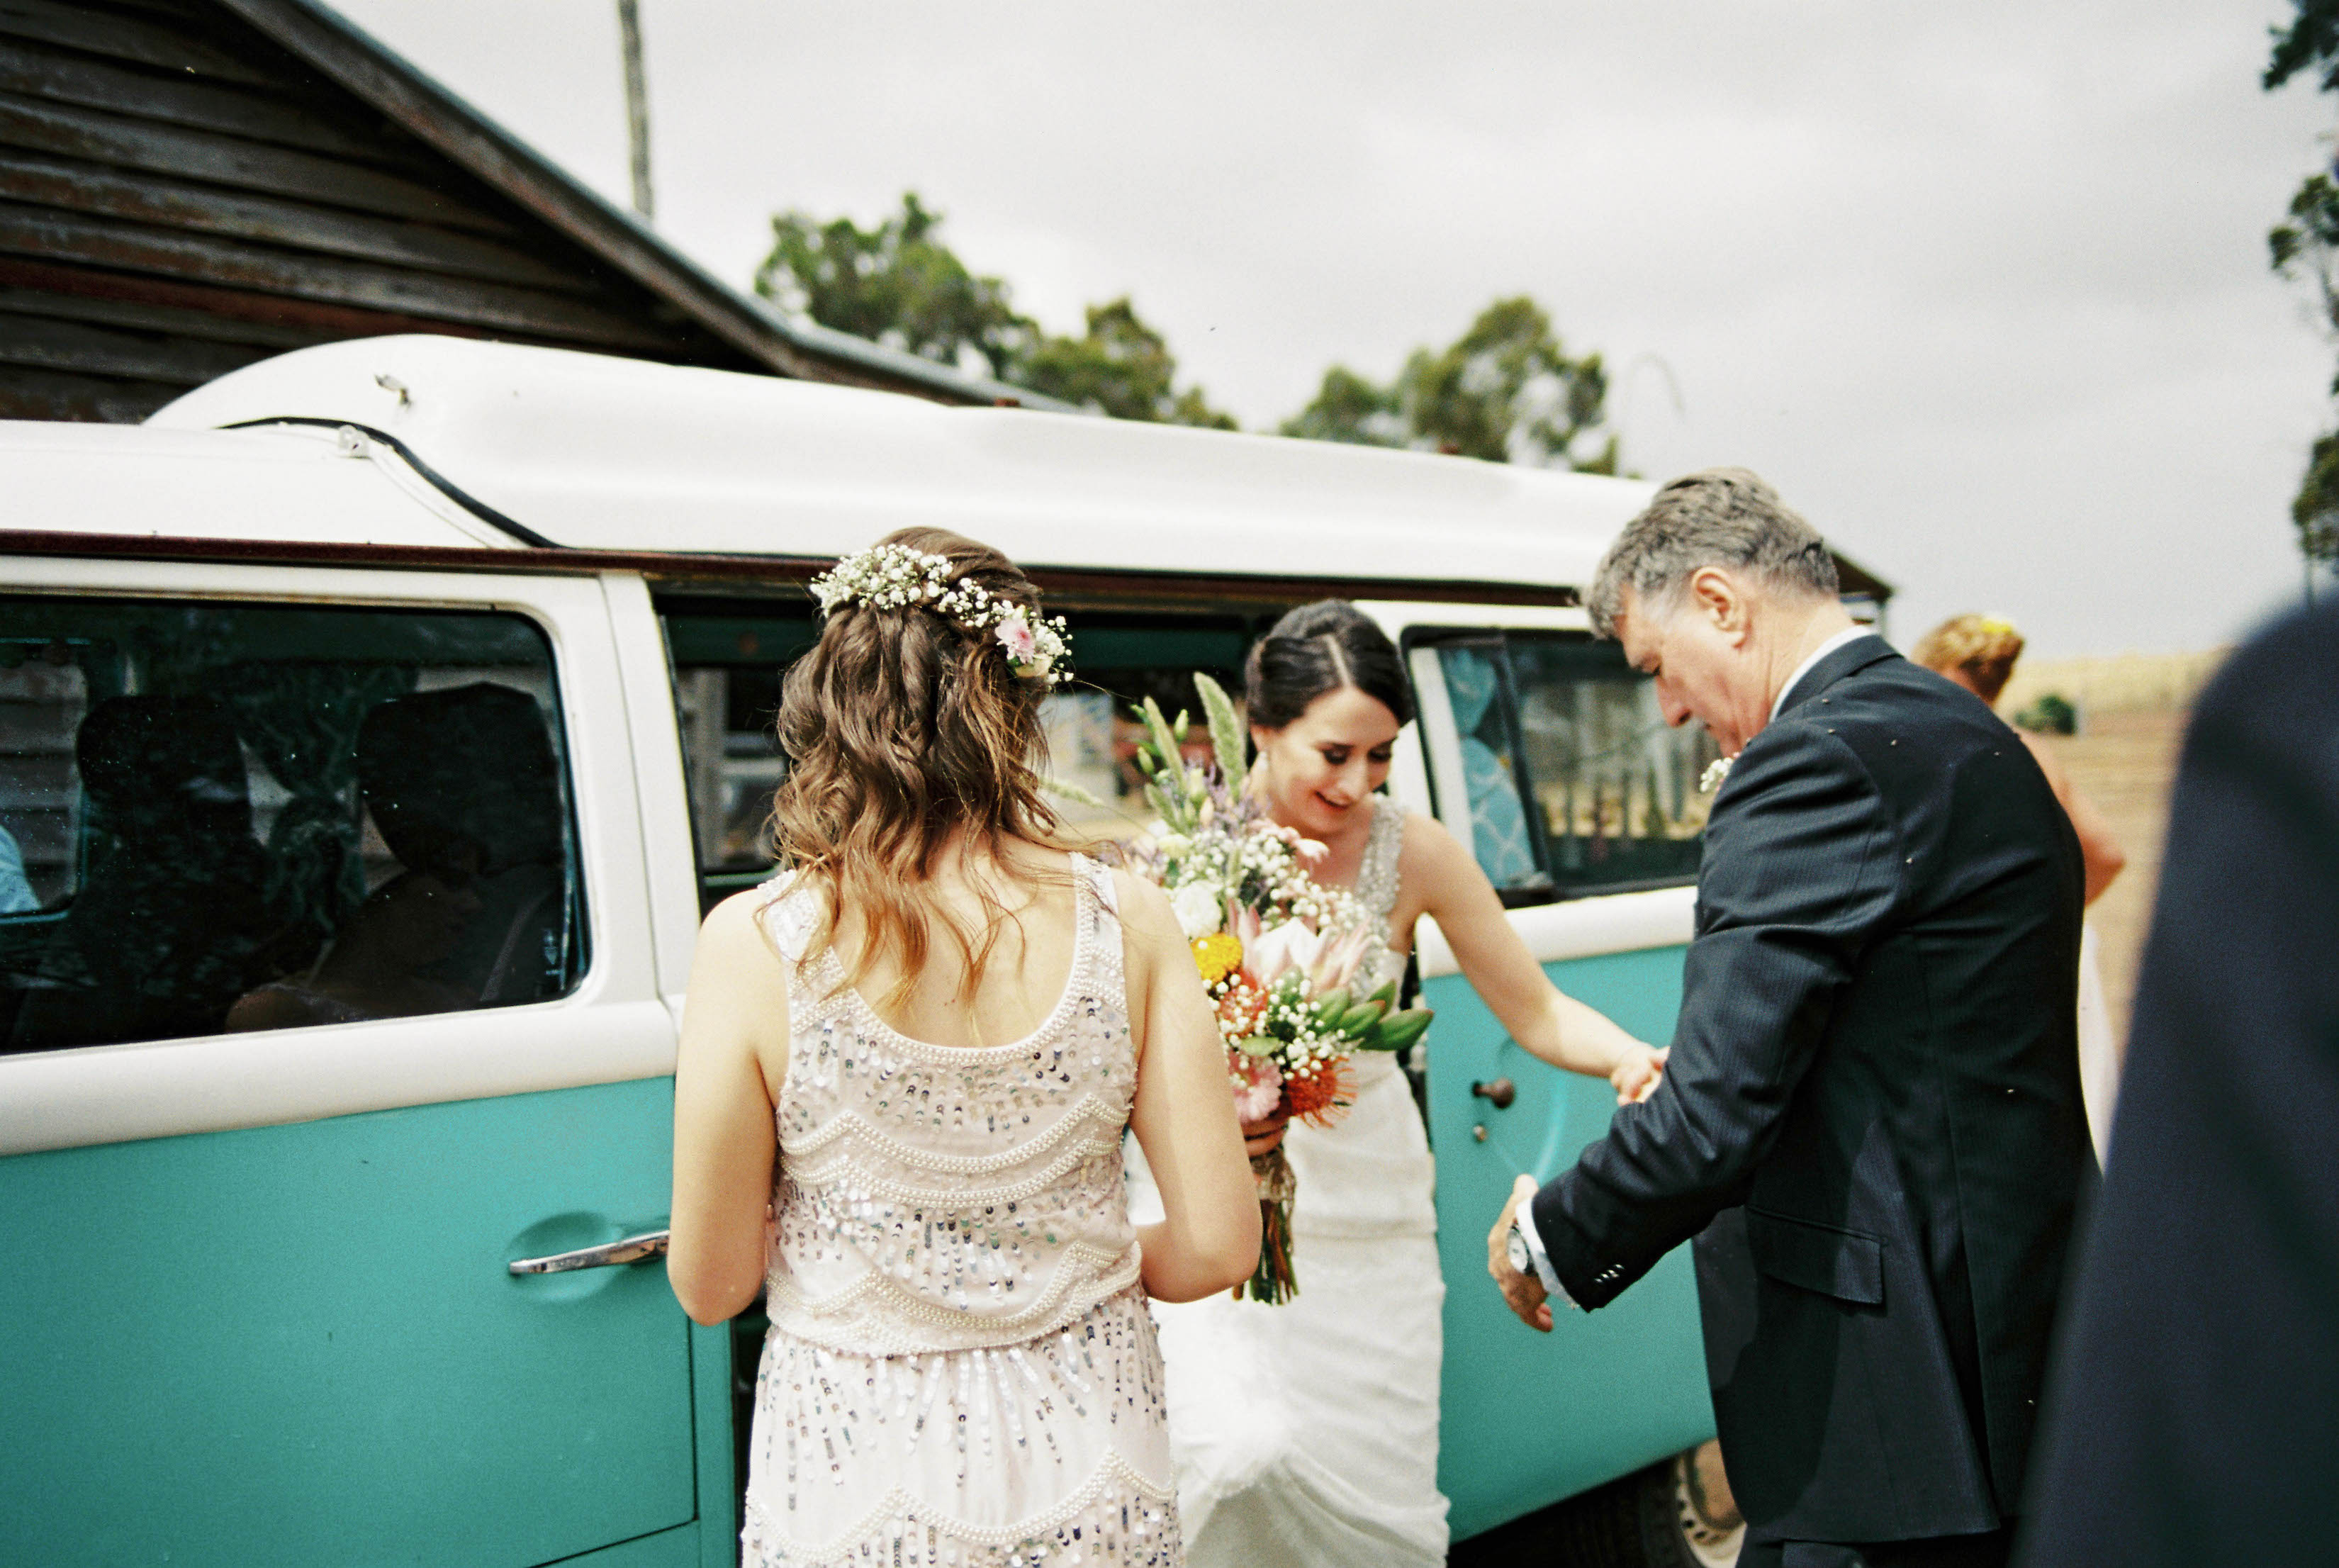 The bride stepping out of a vintage blue and white combi van photographed by Italian and Australian Wedding Photographer, Rhianna May